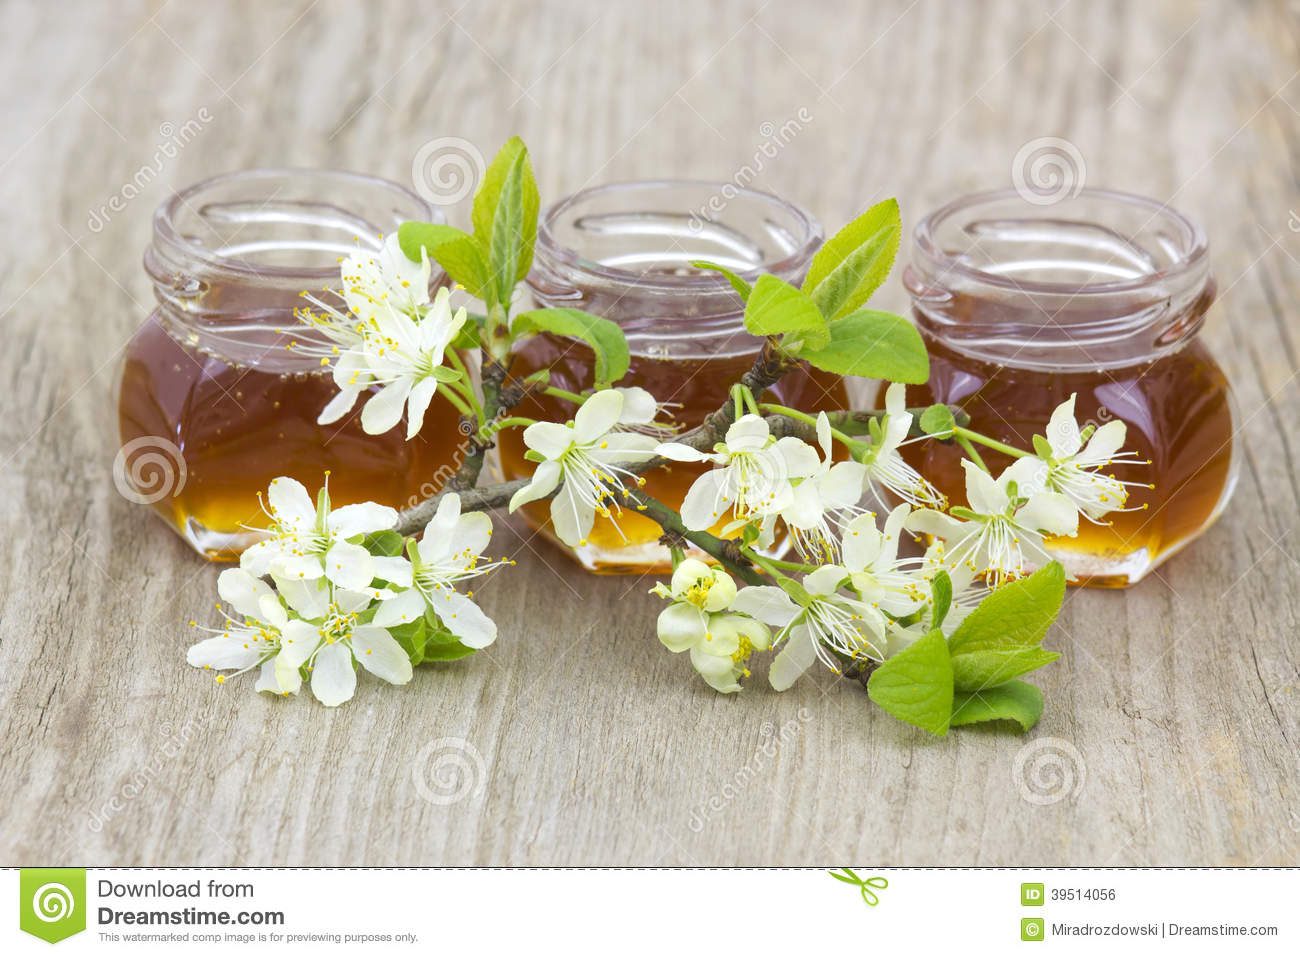 Honey in jars and flowers